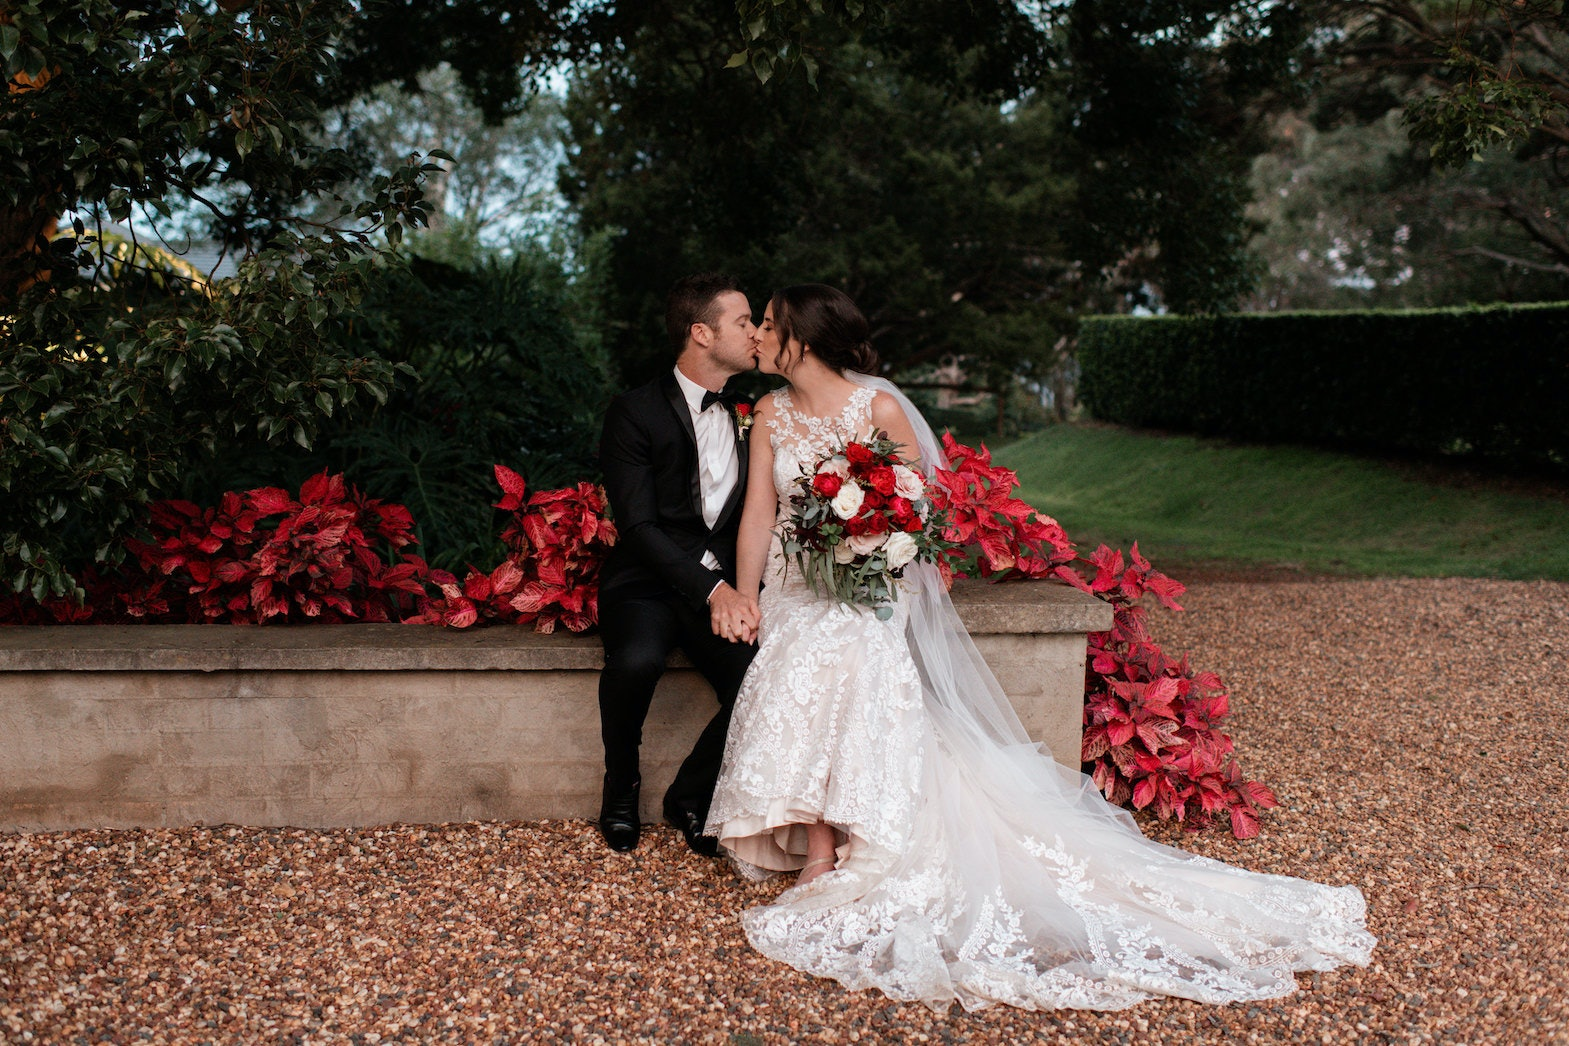 Bride and groom sitting down kissing